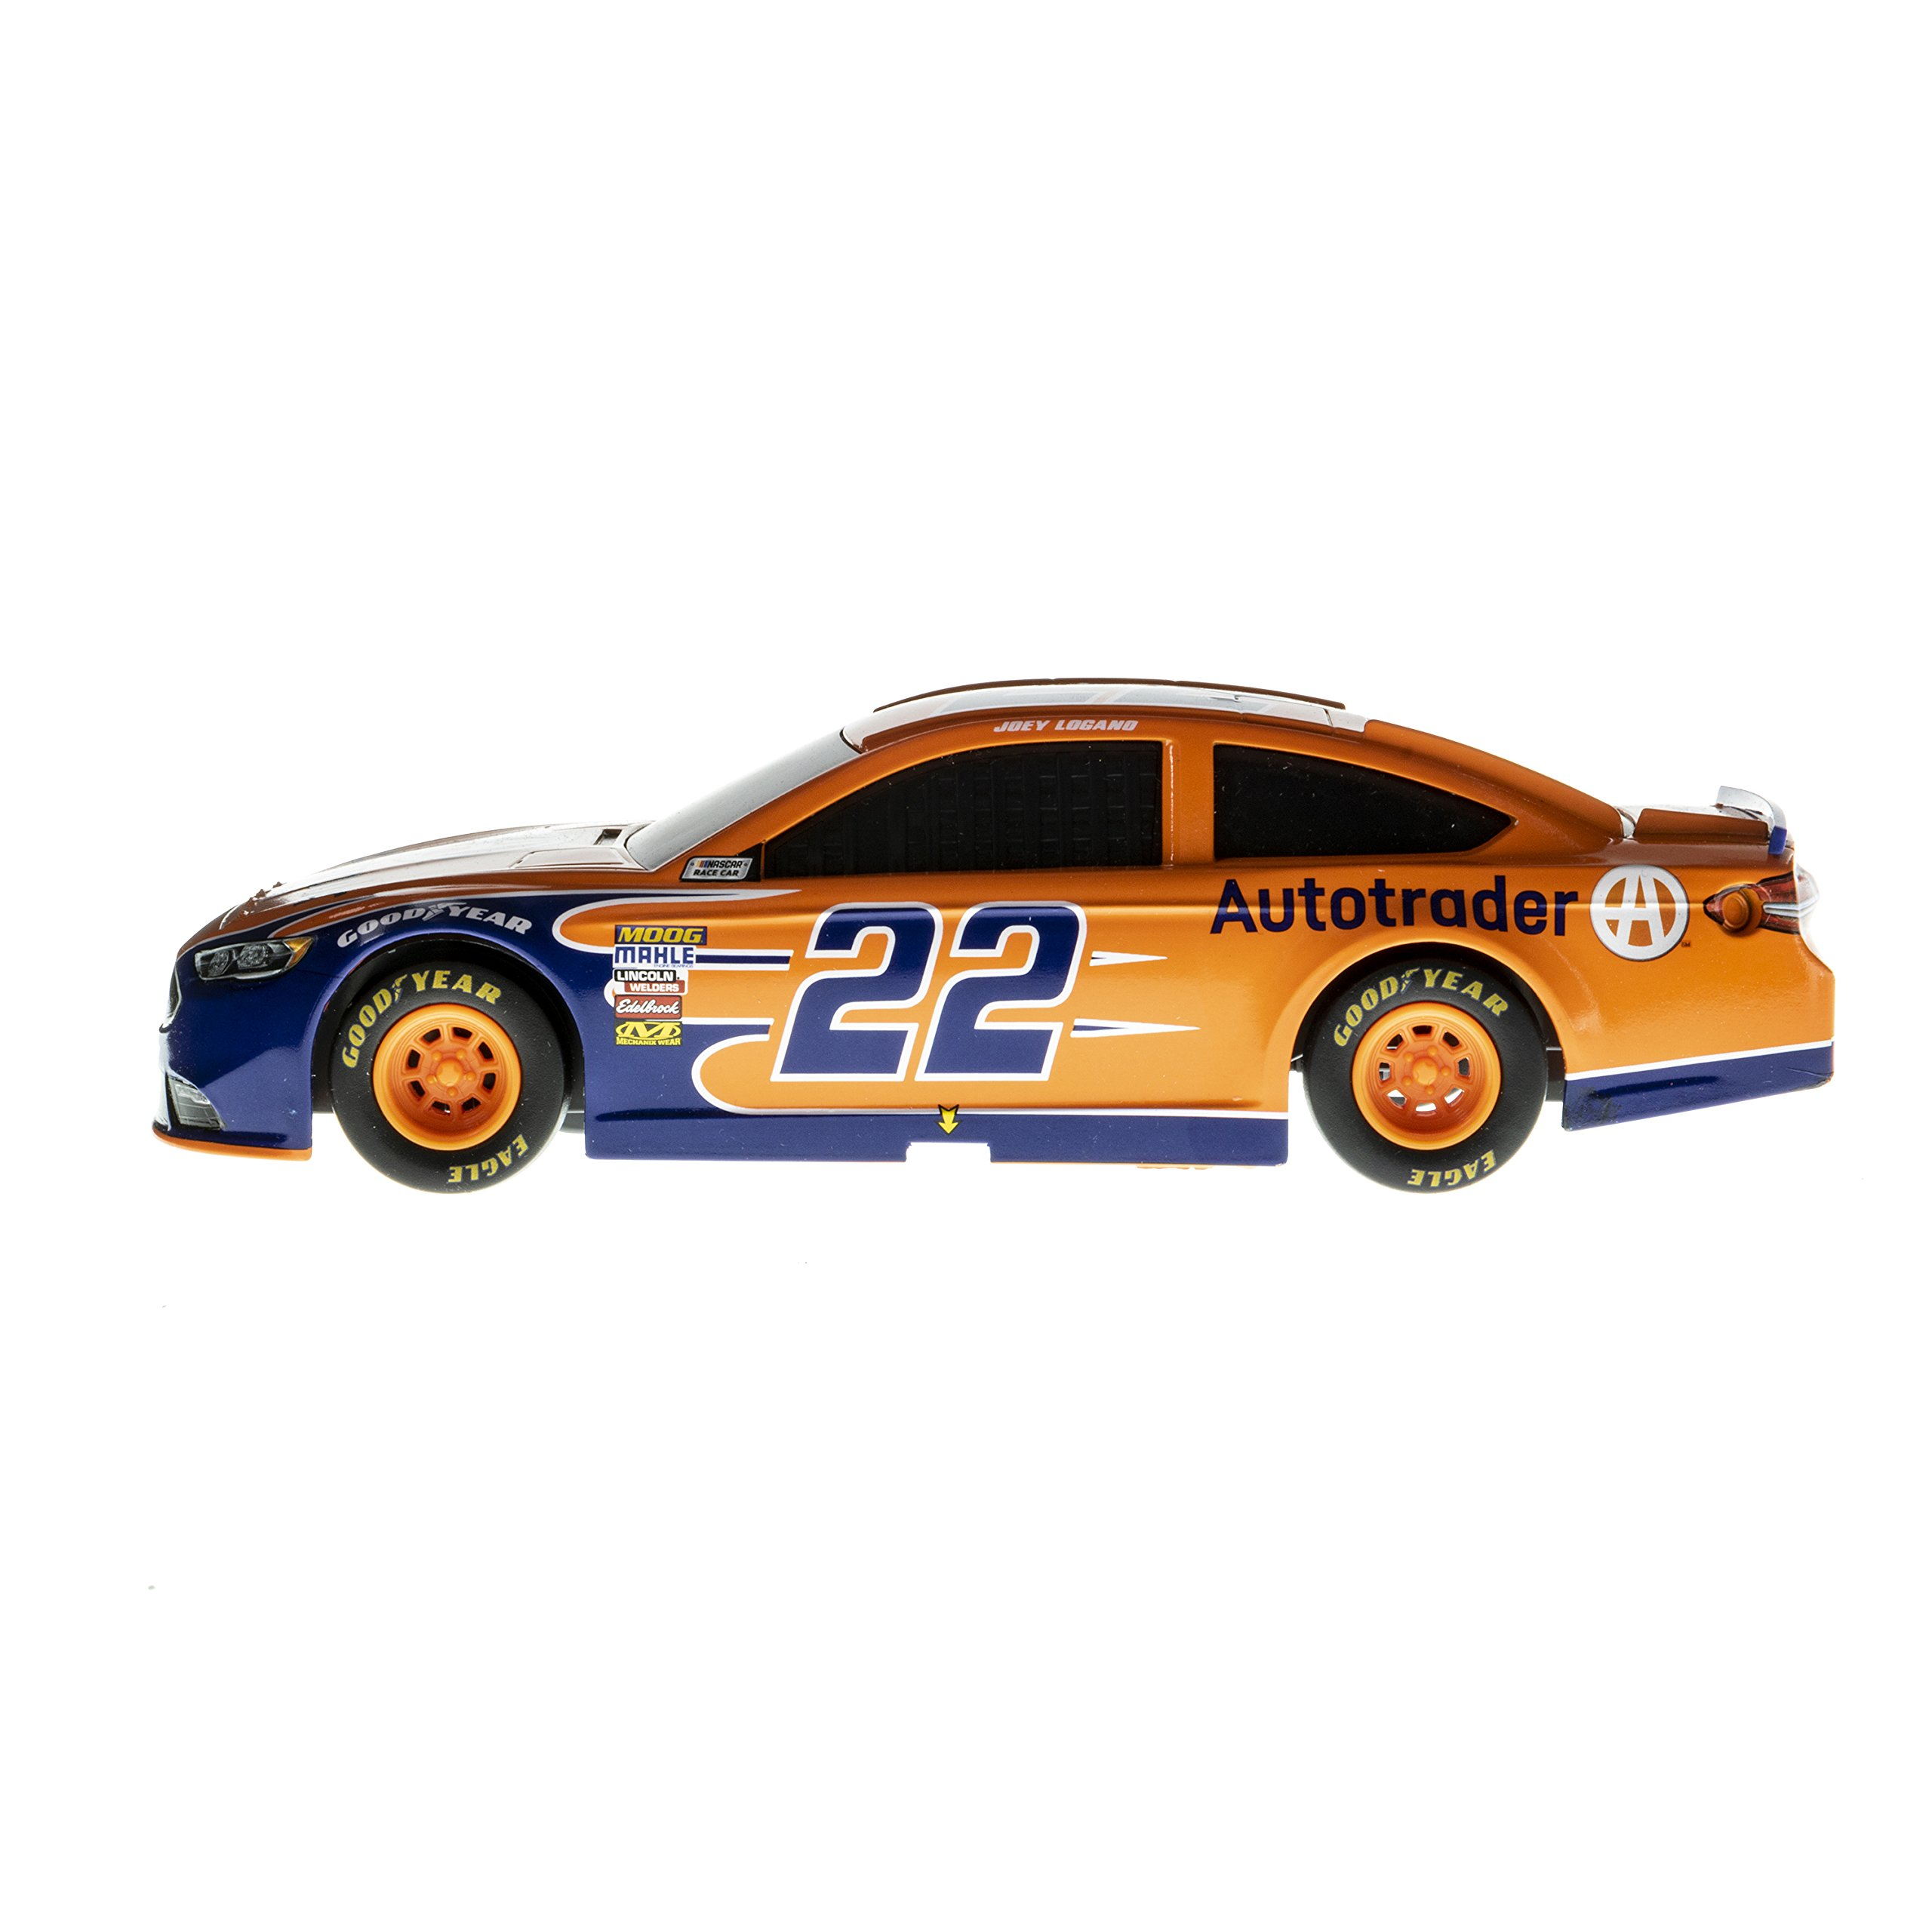 Lionel Racing 15450 NASCAR Authentics 2018 Joey Logano #22 Auto Trader Lionel Racing Diecast, Blue, Orange, White; 1: 24 Scale